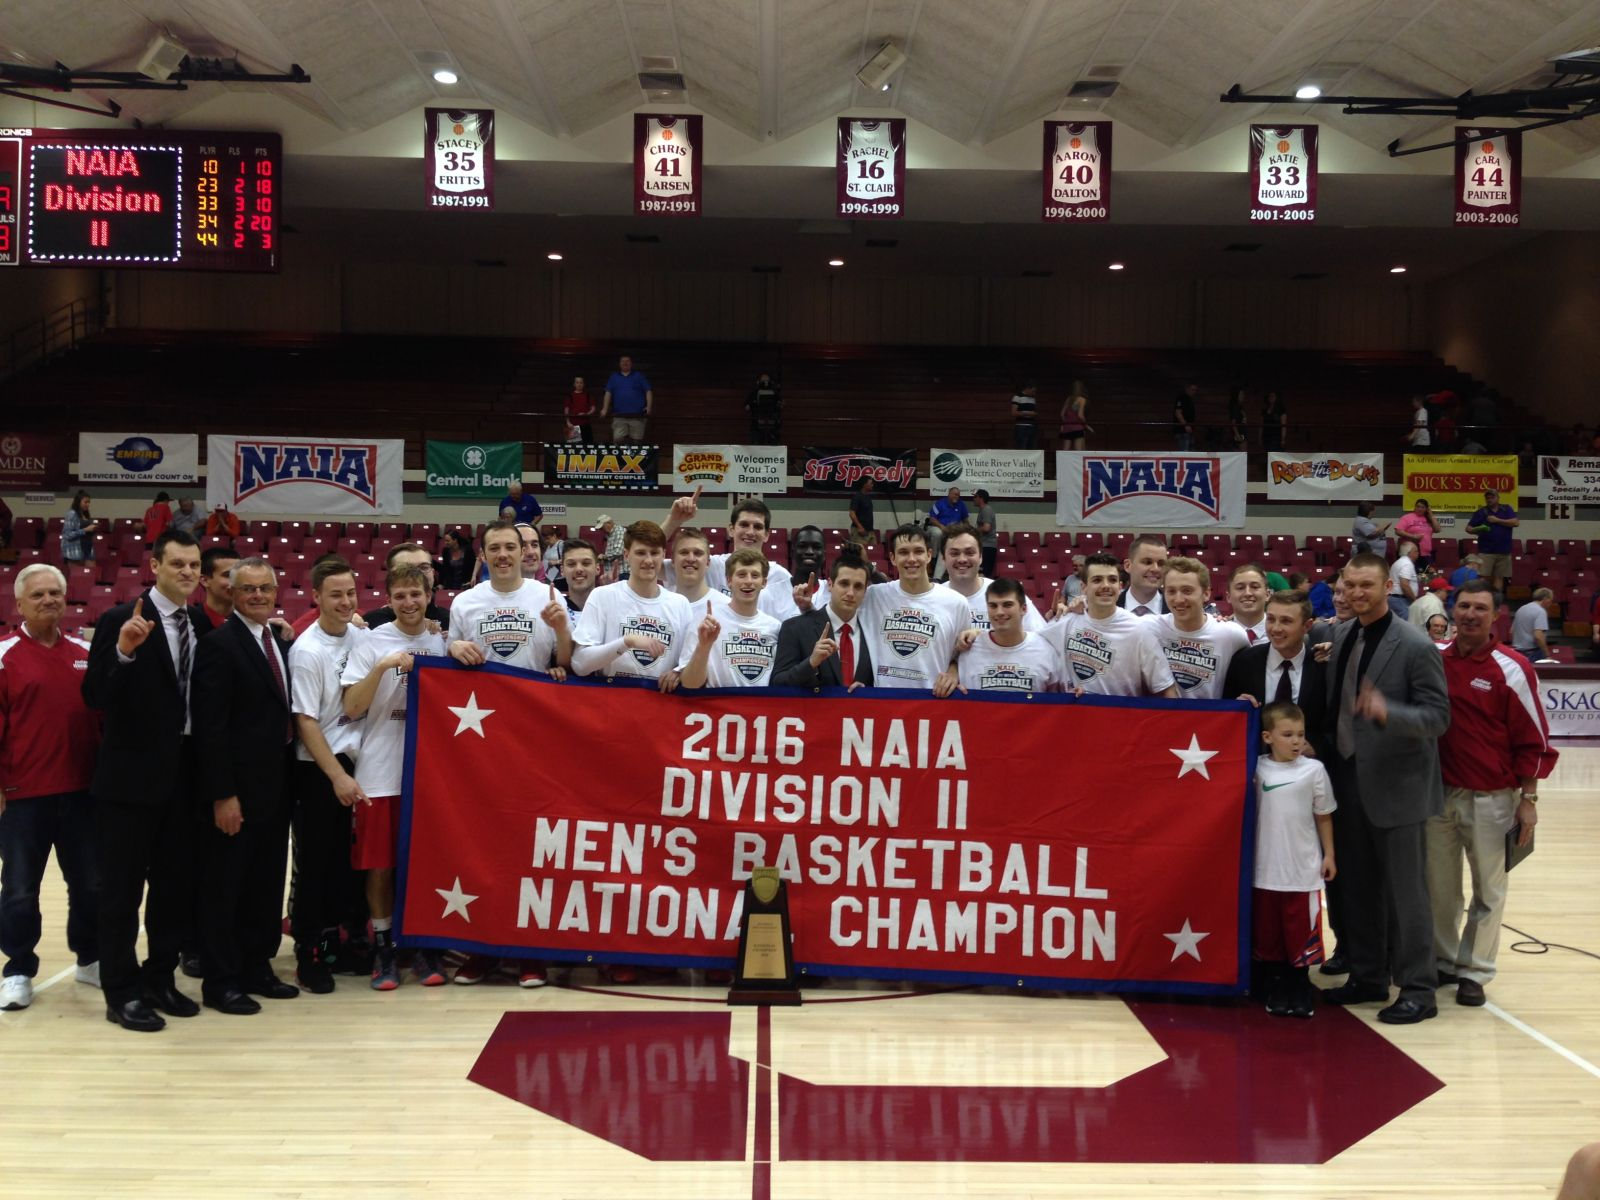 da1b89caf ... men's basketball made two defensive stops in the final seven seconds to  hang on for a 69-66 victory to win the NAIA Division II National  Championship.